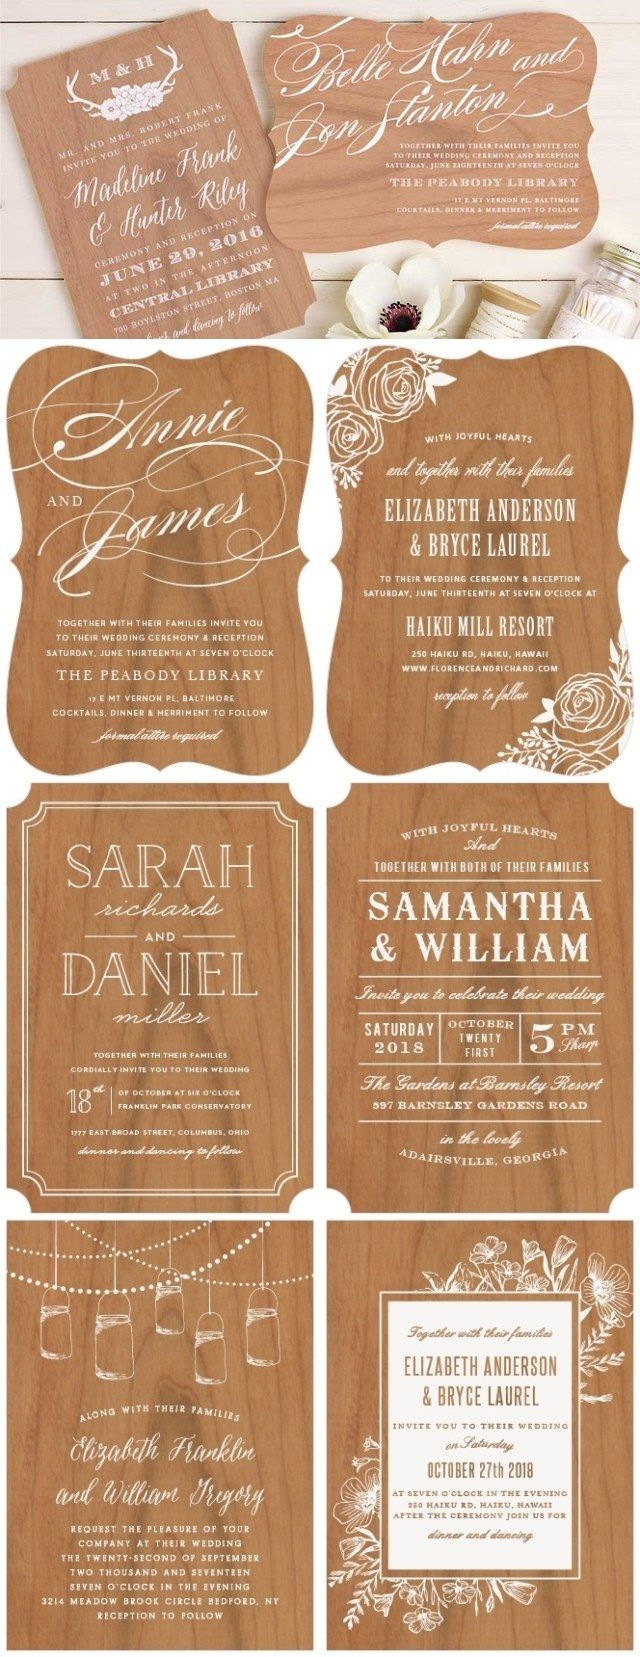 How to Create Wedding Invitations Online Create wedding invitation